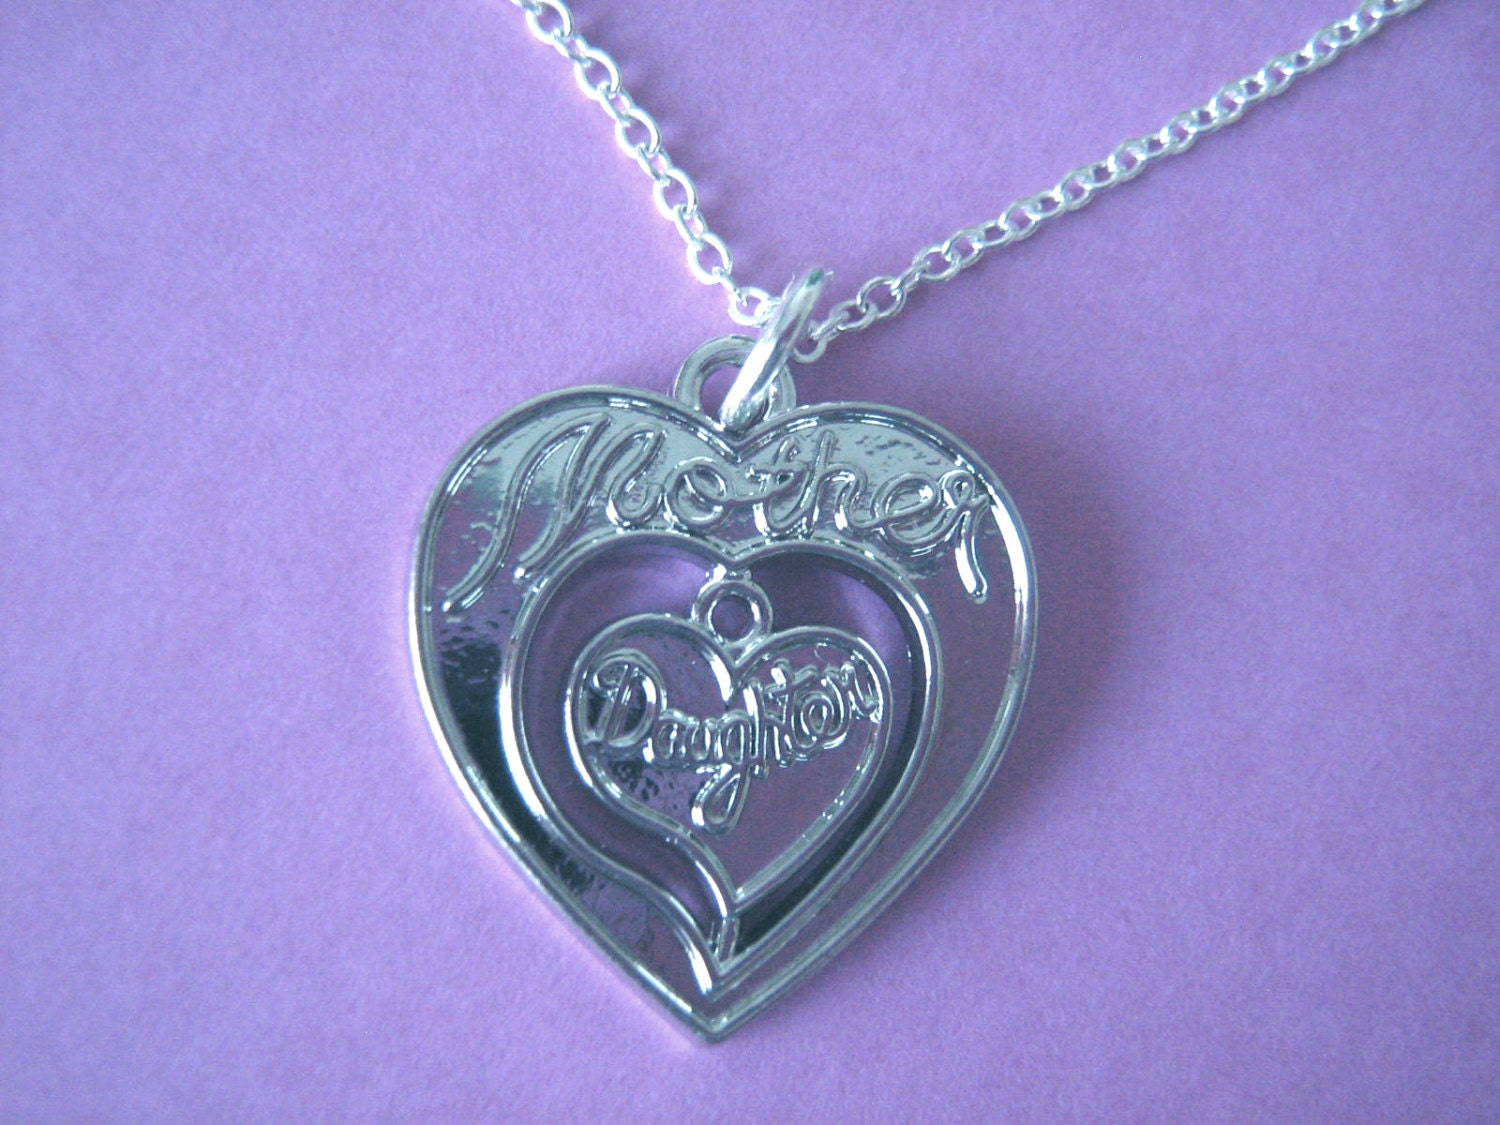 Mother Daughter Necklace Heart Charm Mother Jewellery Keepsake Gift